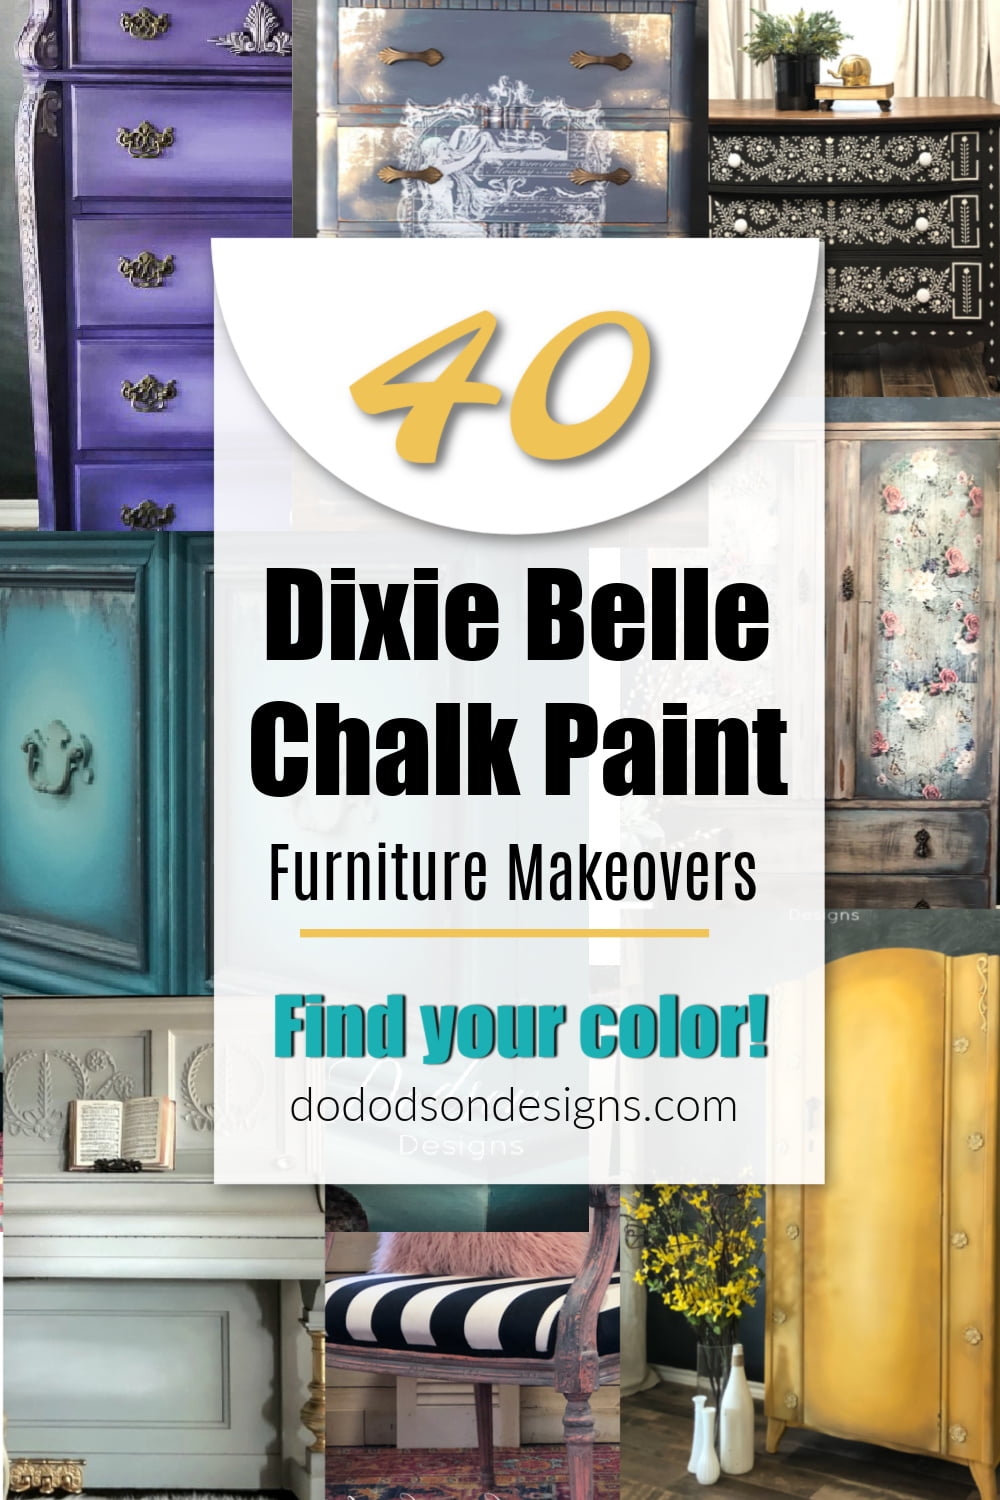 My Top 40 Dixie Belle Chalk Paint Furniture Makeovers